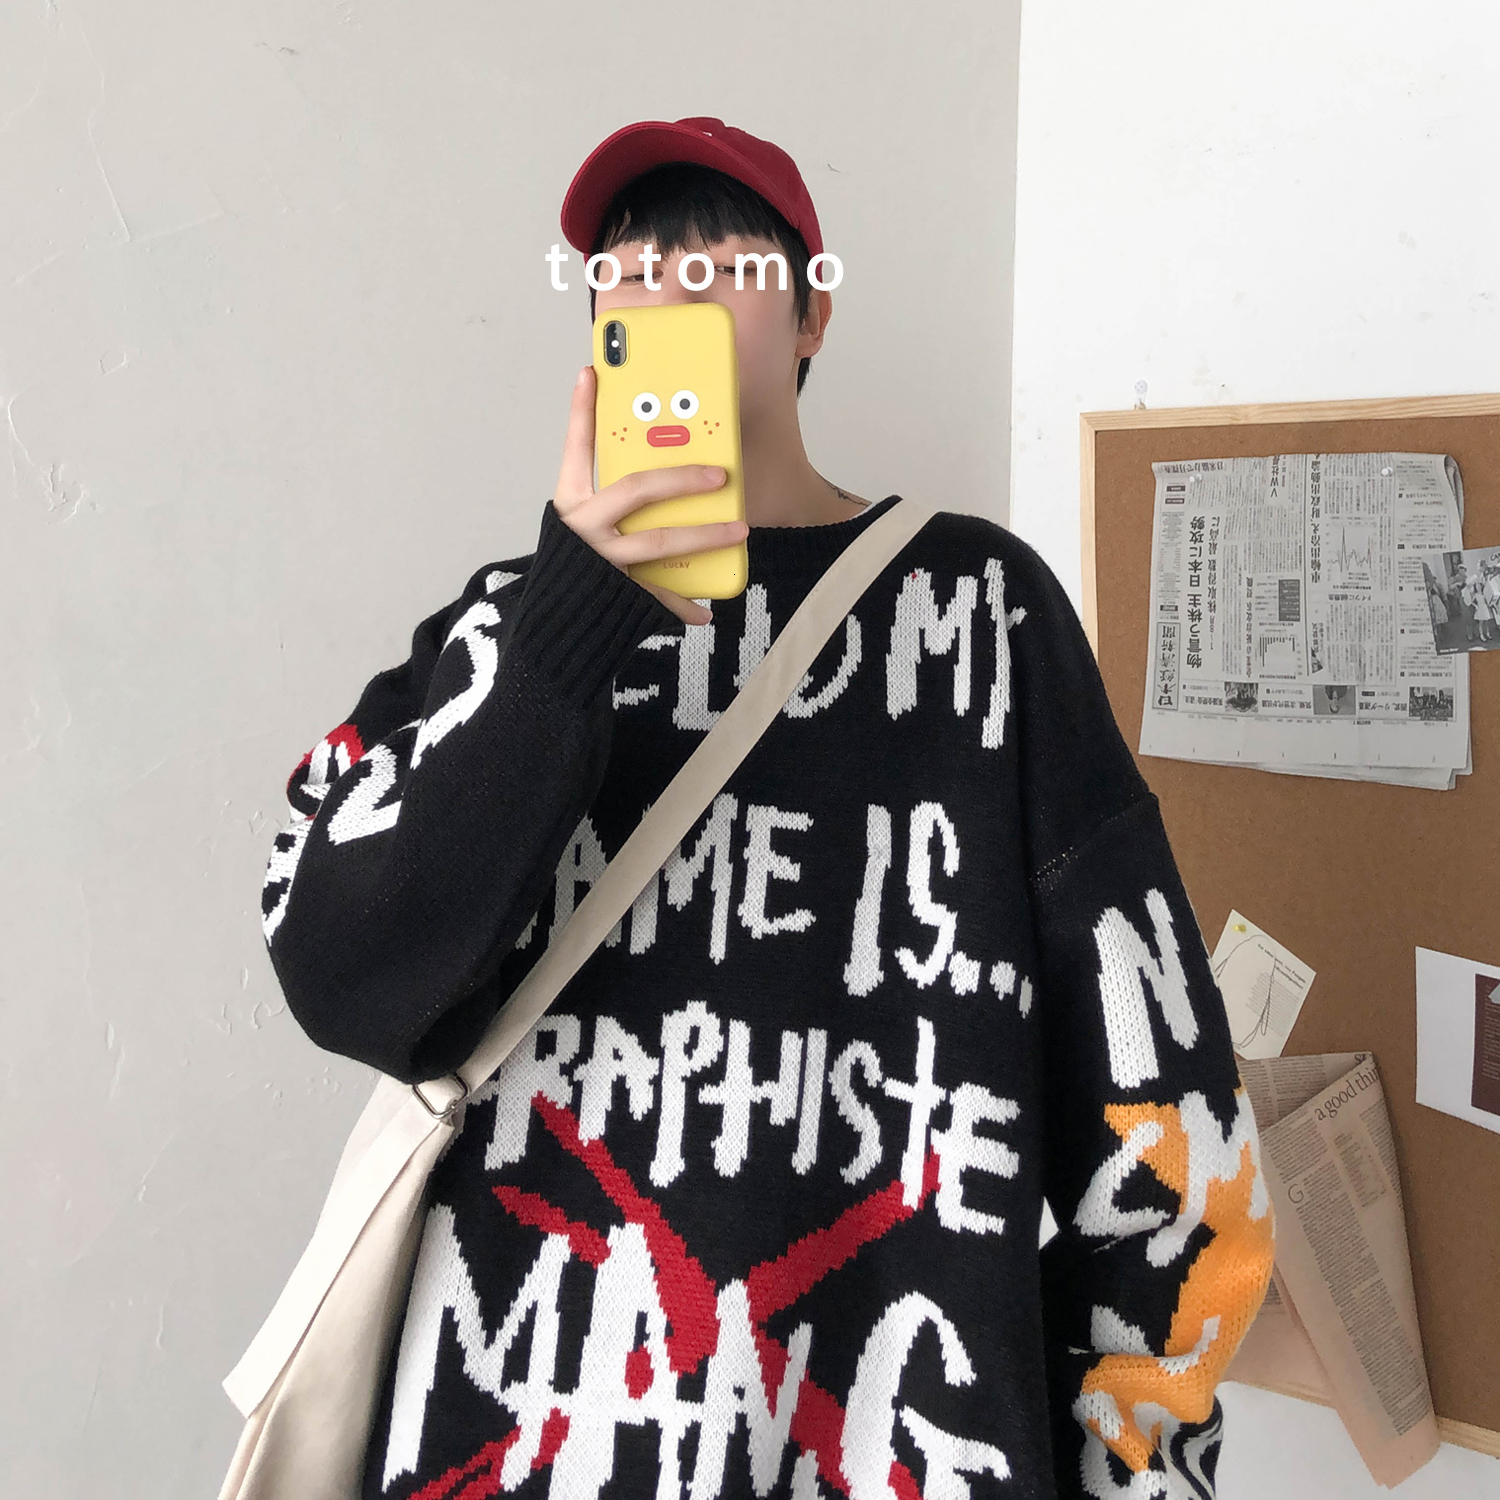 2019 Winter Men's Letter Printing Coats Doodle Design Loose Round Neck Woolen Knitting Long Sleeve Pullover Cashmere Sweater